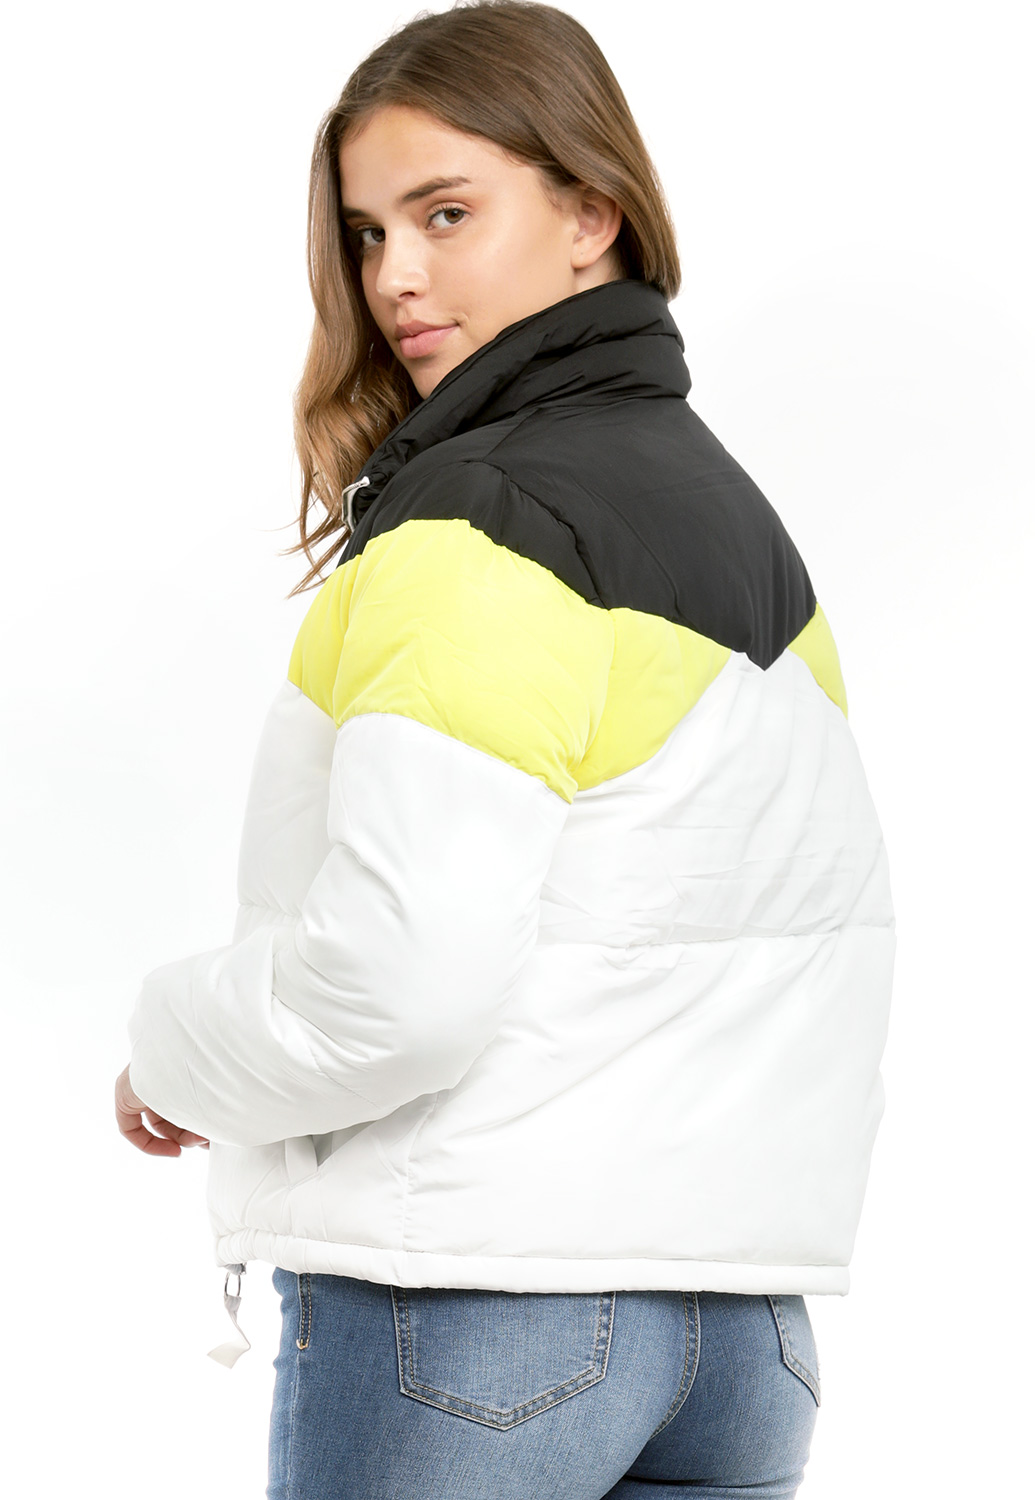 Colorblocked Bomber Jacket